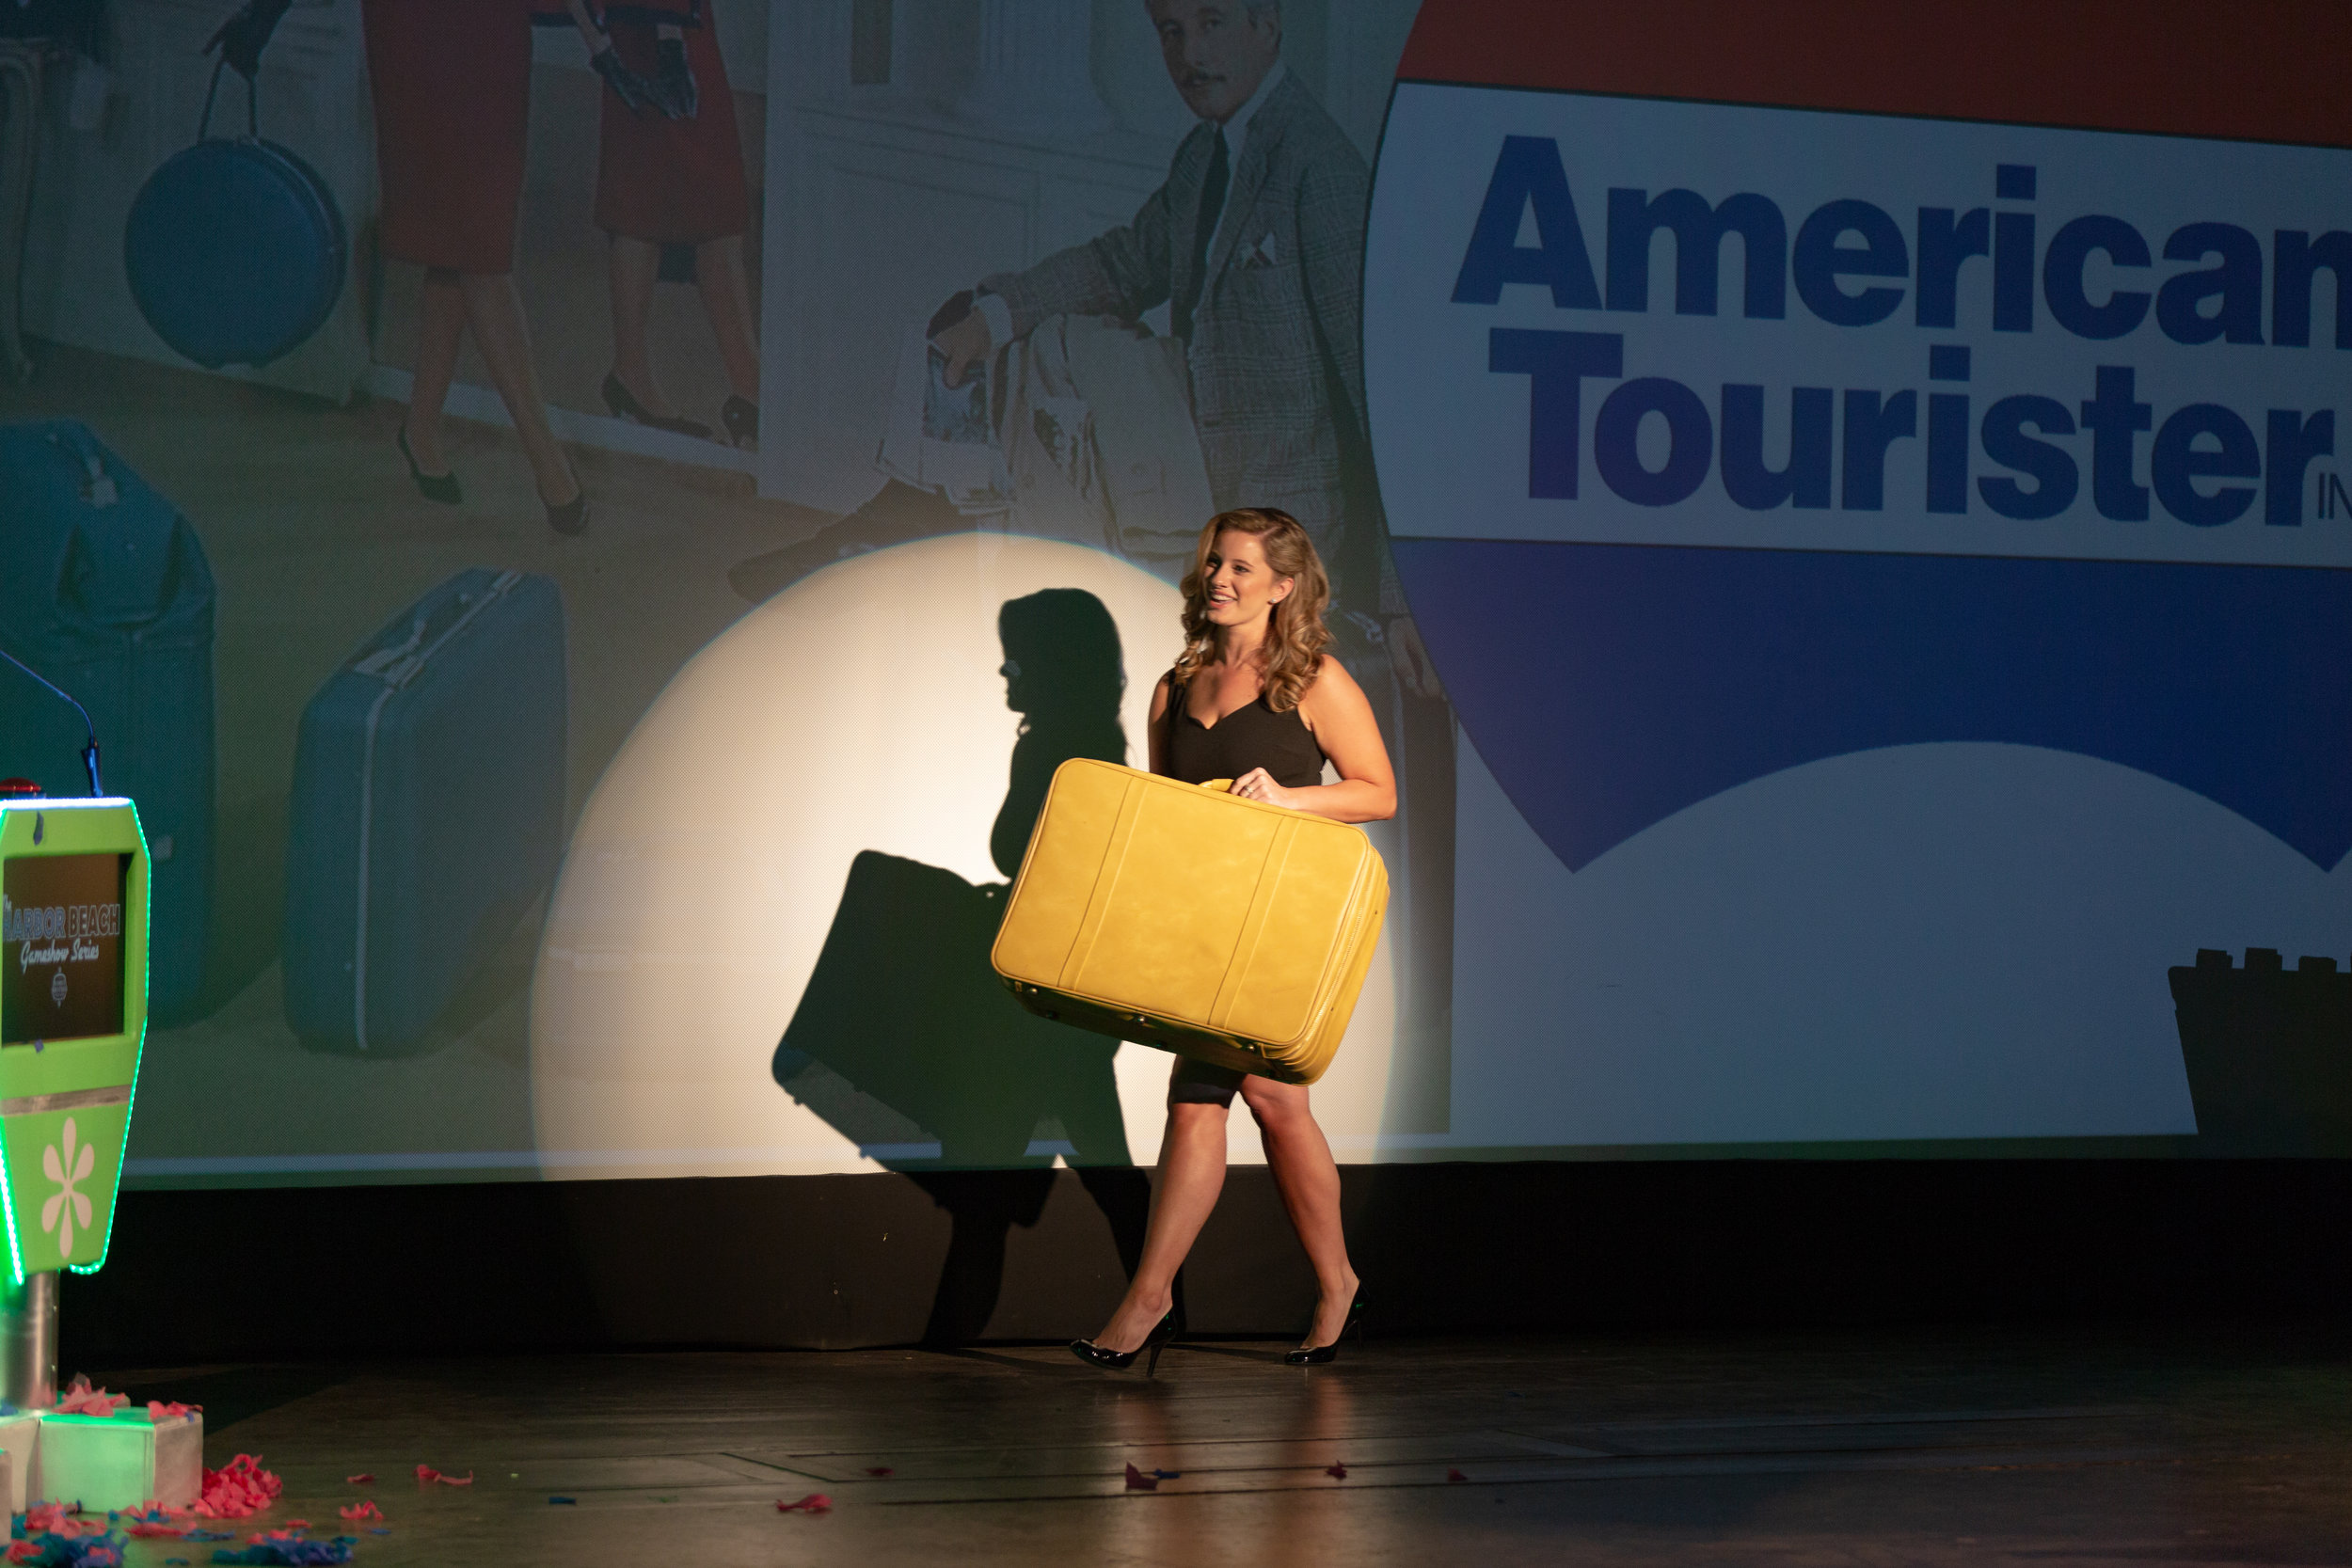 The Real Clark's Cutie, Rochelle Thompson delivers a authentic mustard yellow American Tourister luggage piece to a contestant.